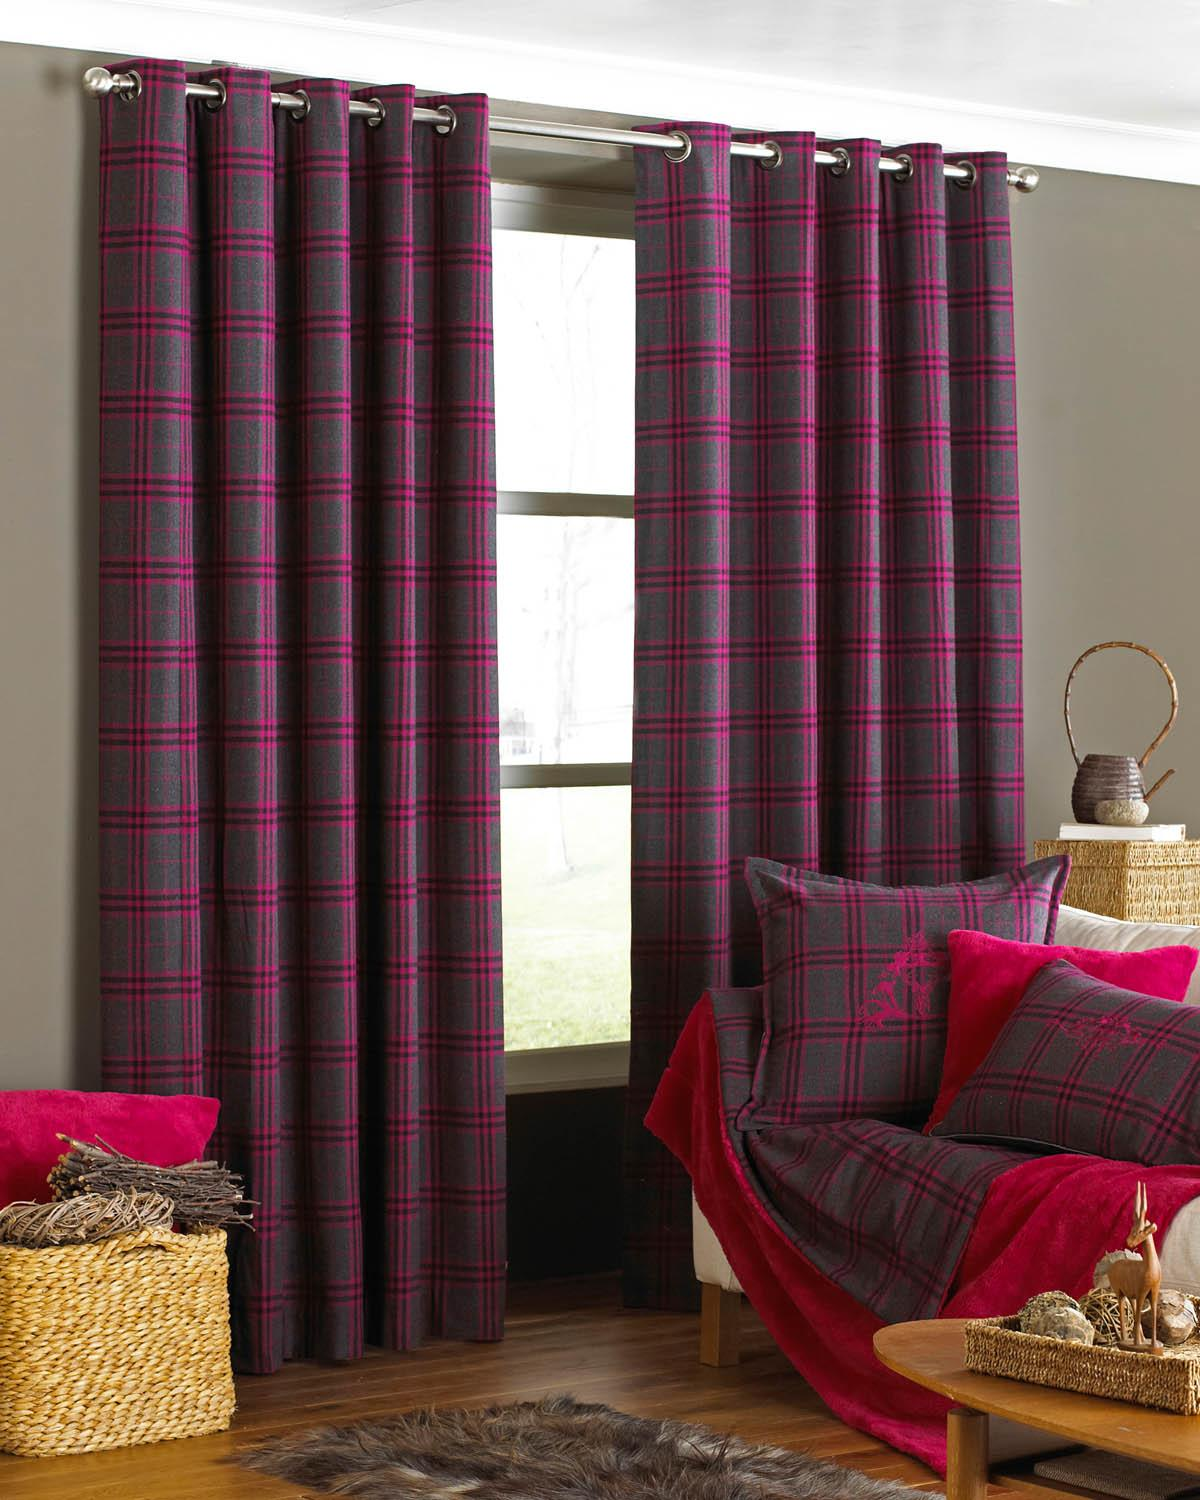 Next Bedroom Curtains Plum Curtains 66 X 90